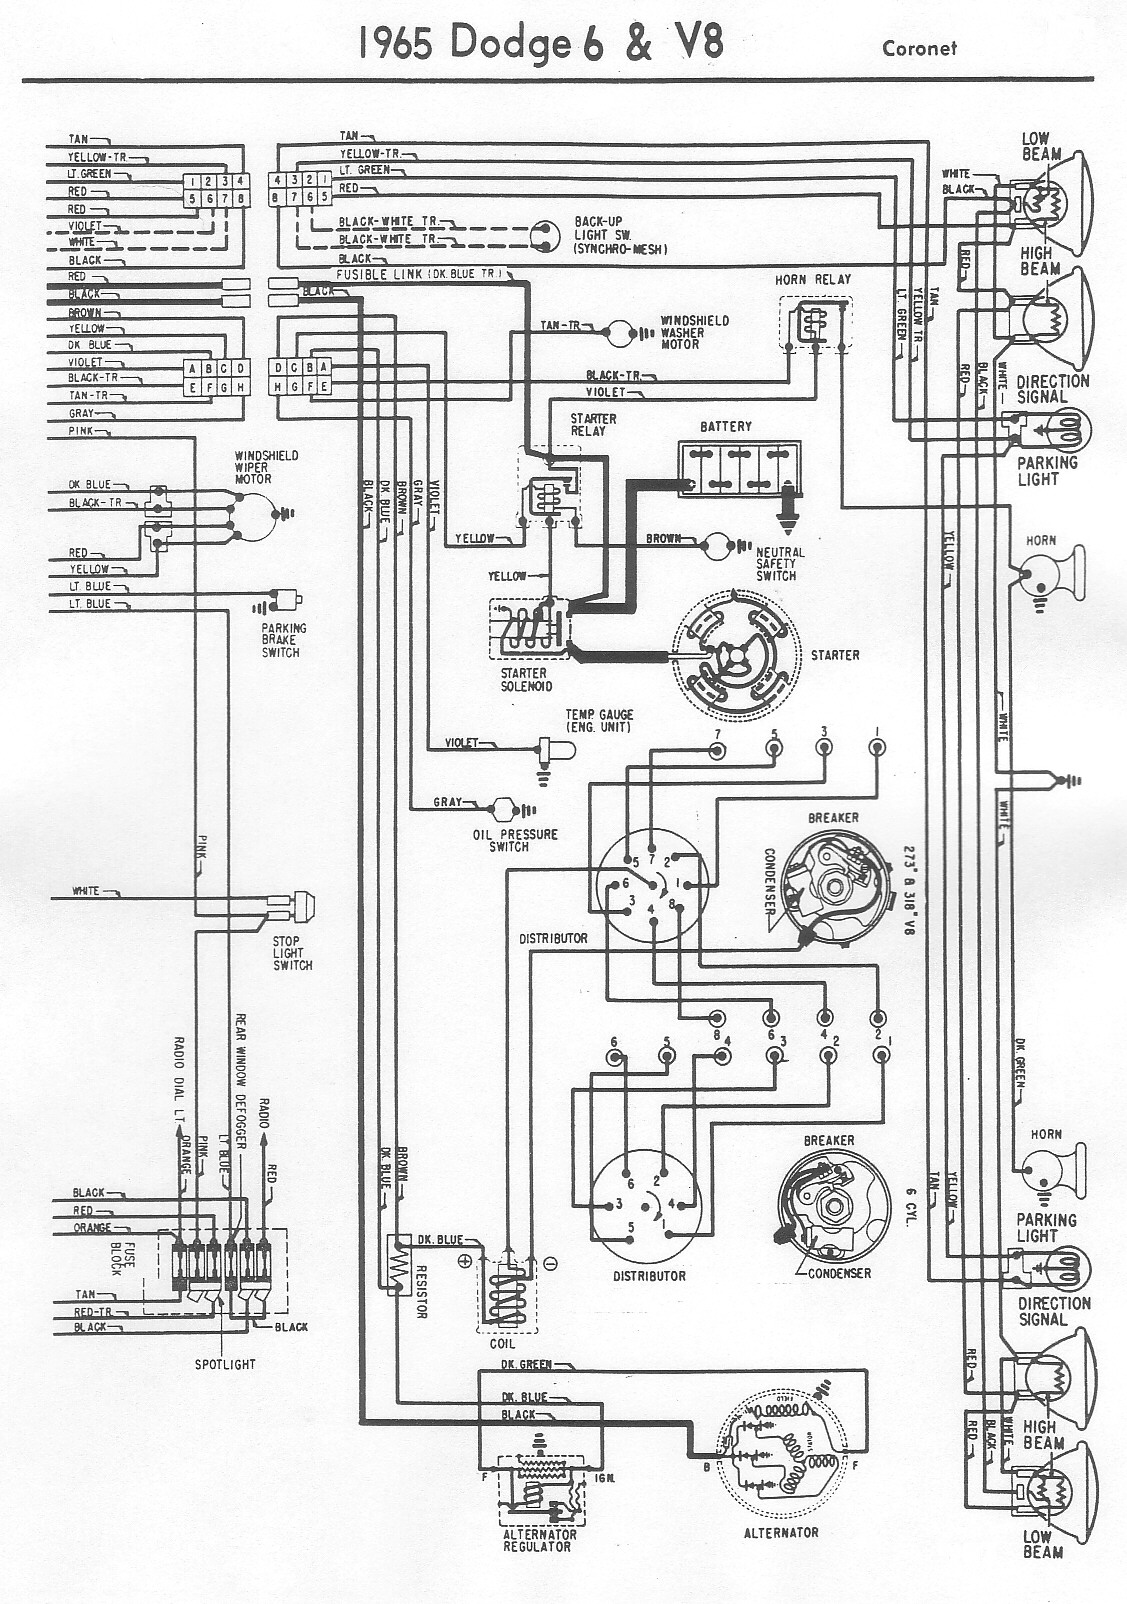 1967 dodge dart wiring schematic wiring diagram & electricity ignition diagram  1967 dodge dart wiring diagram